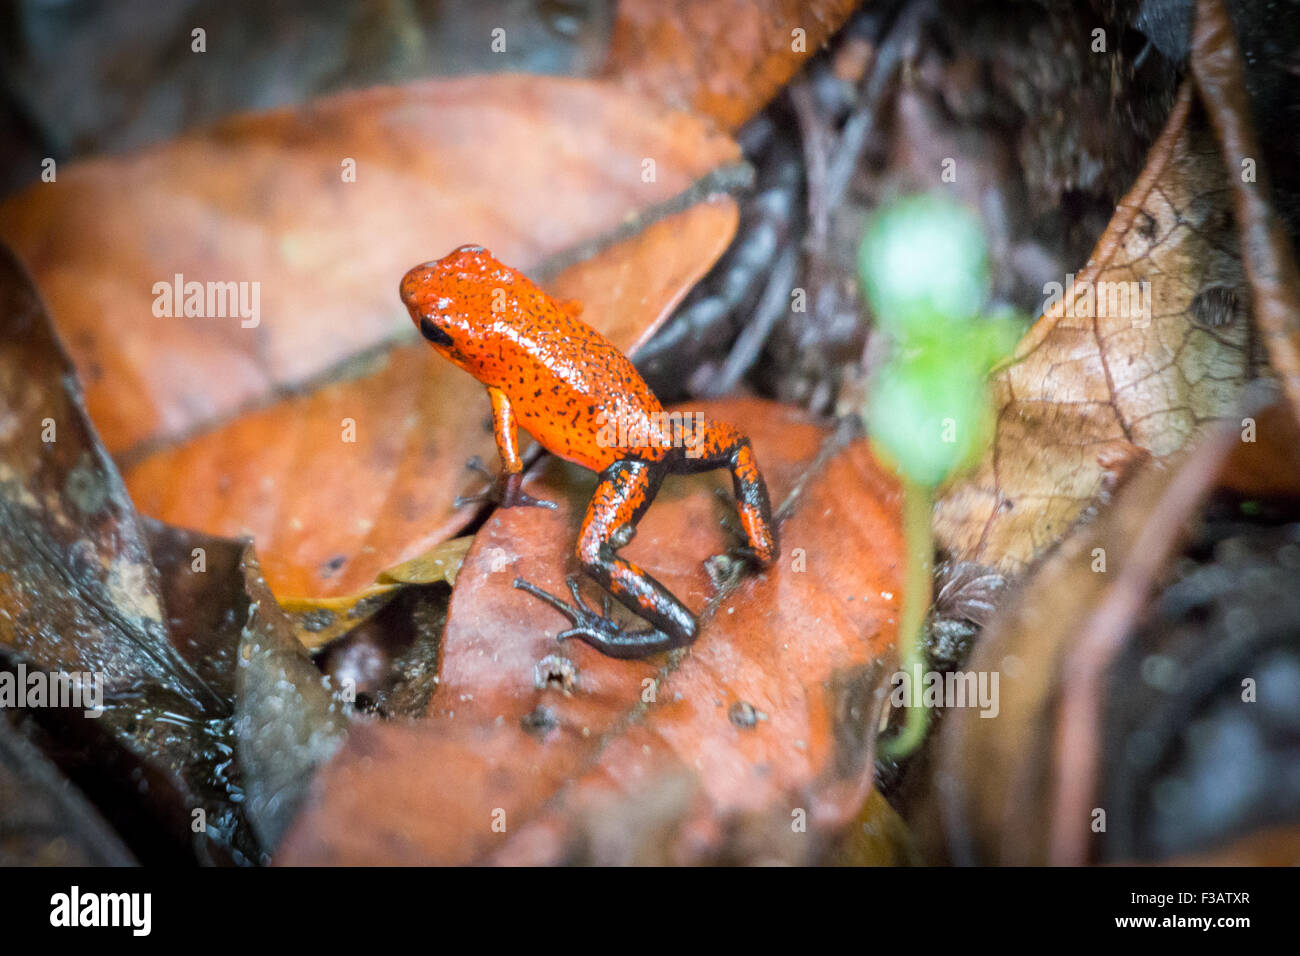 Costa Rica, Orange Poison Blue Jeans Frog - Stock Image